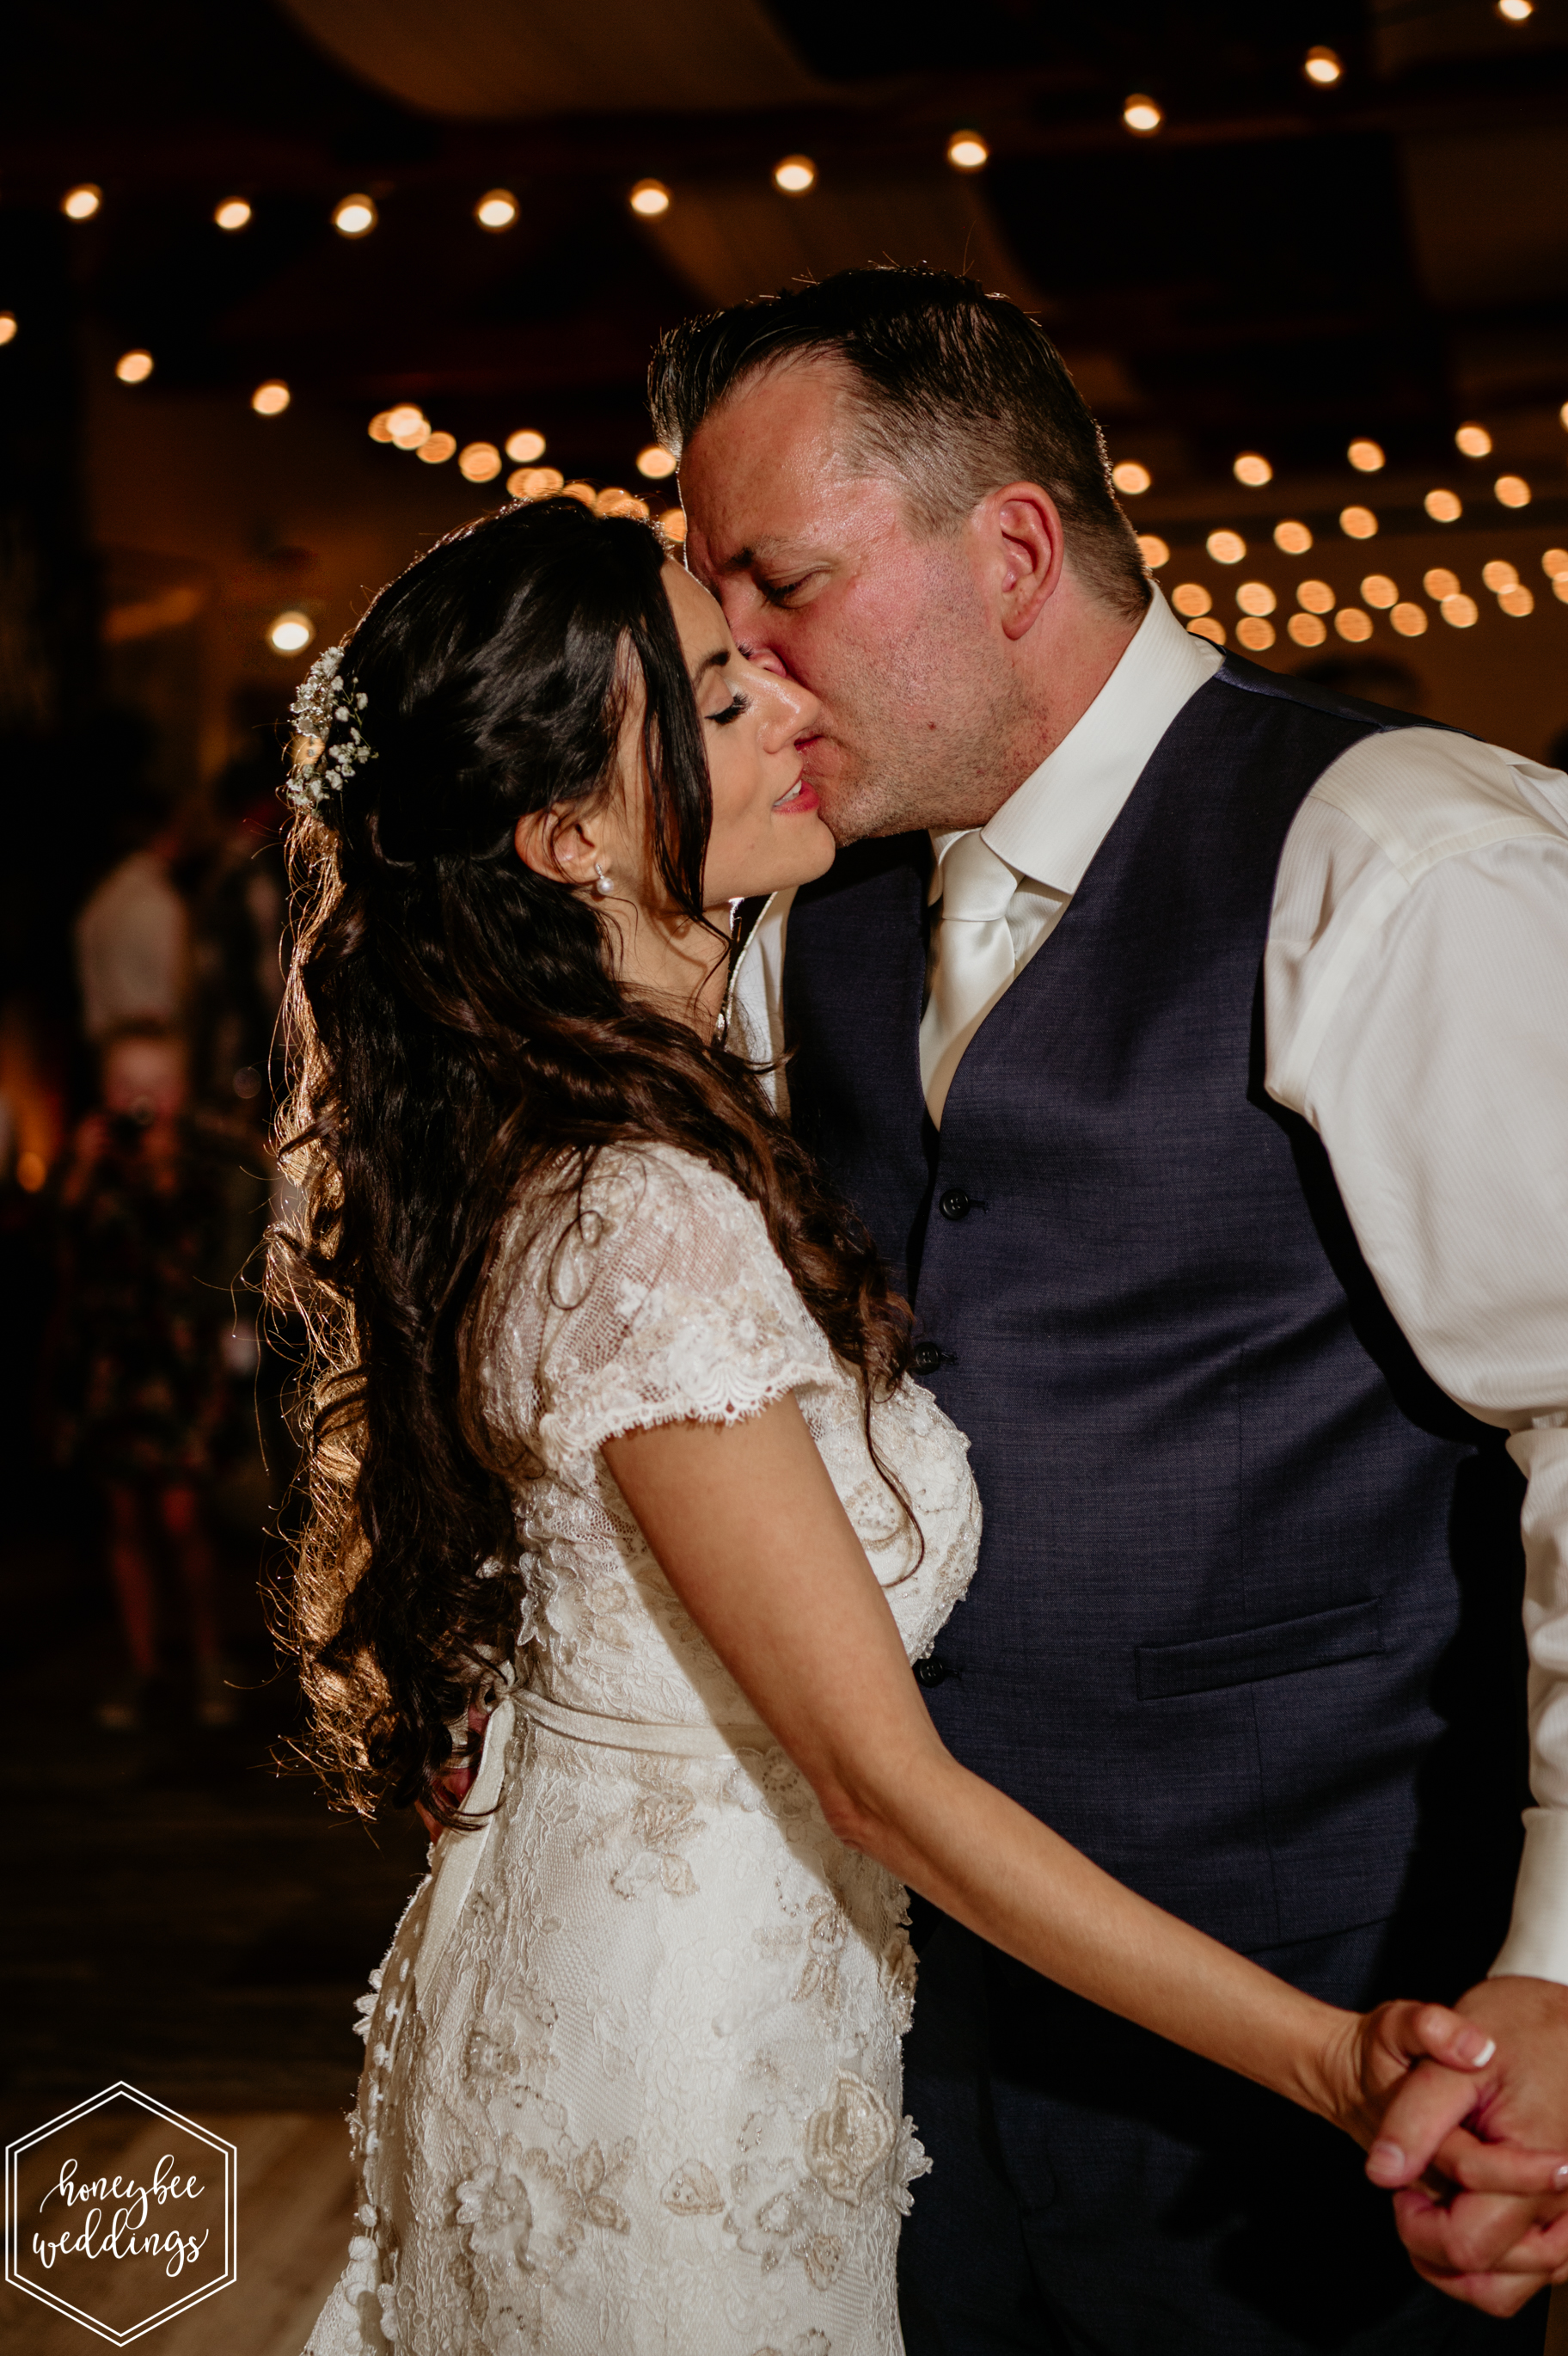 068Montana wedding photographer videographer_Chico hot springs wedding_Honeybee Weddings_Claudia & Bill_June 03, 2019-998.jpg